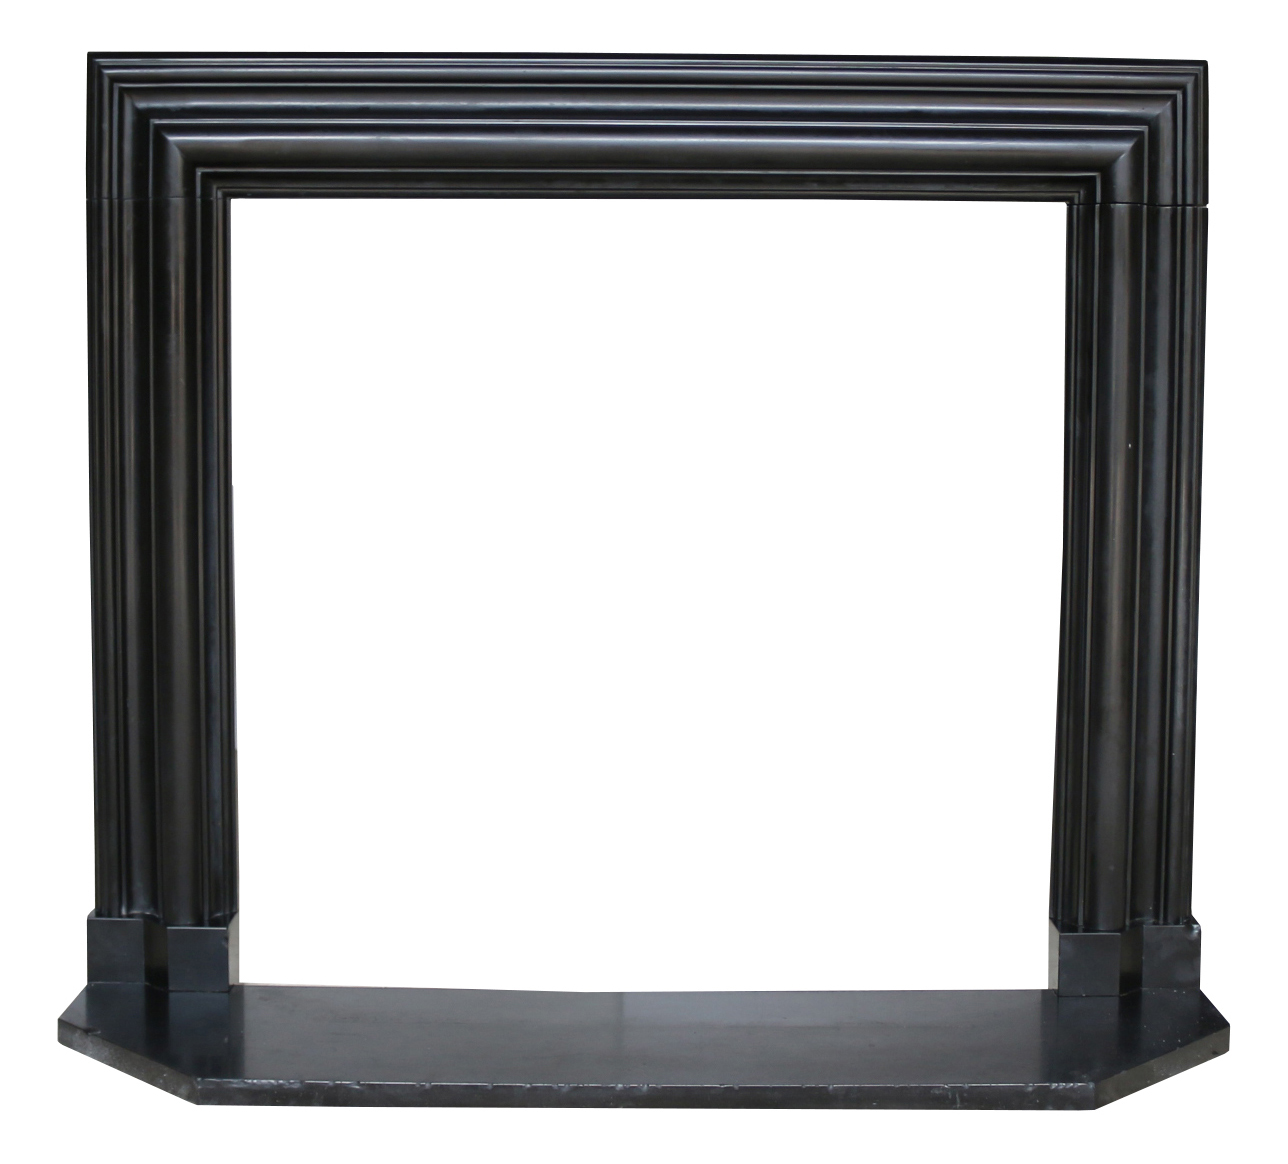 An Antique Bolection Marble Fire Surround Uk Heritage